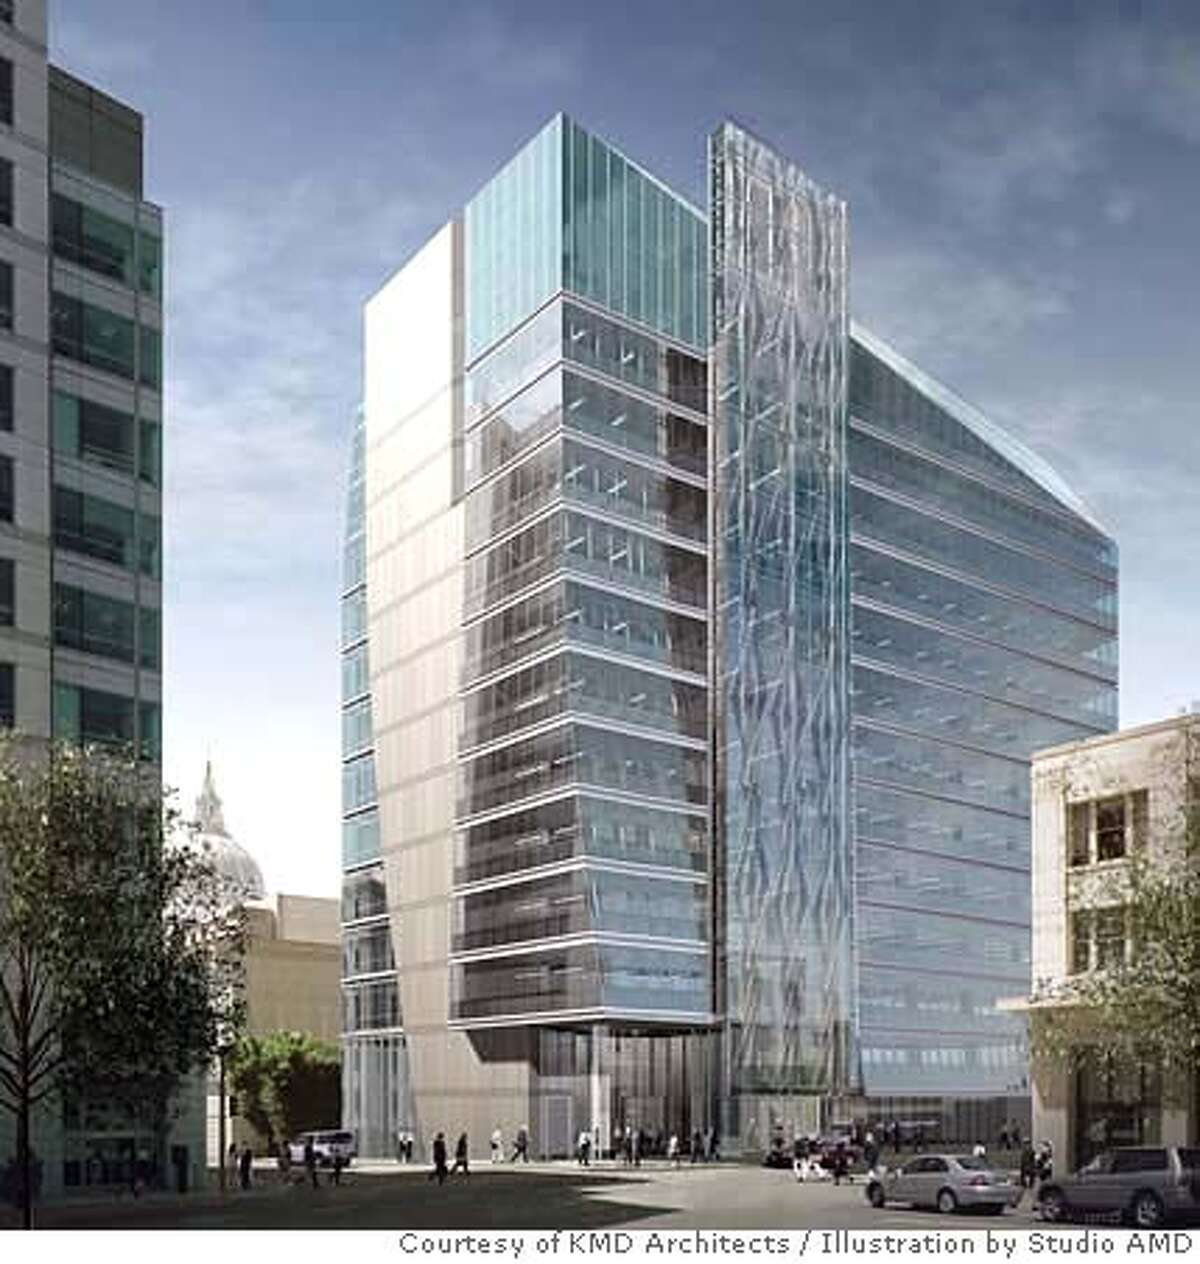 New SFPUC Administration Office Building at 525 Golden Gate Avenue viewed from the northeast corner at the Federal Building Plaza. Credit: Courtesy of KMD Architects, illustration by Studio AMD